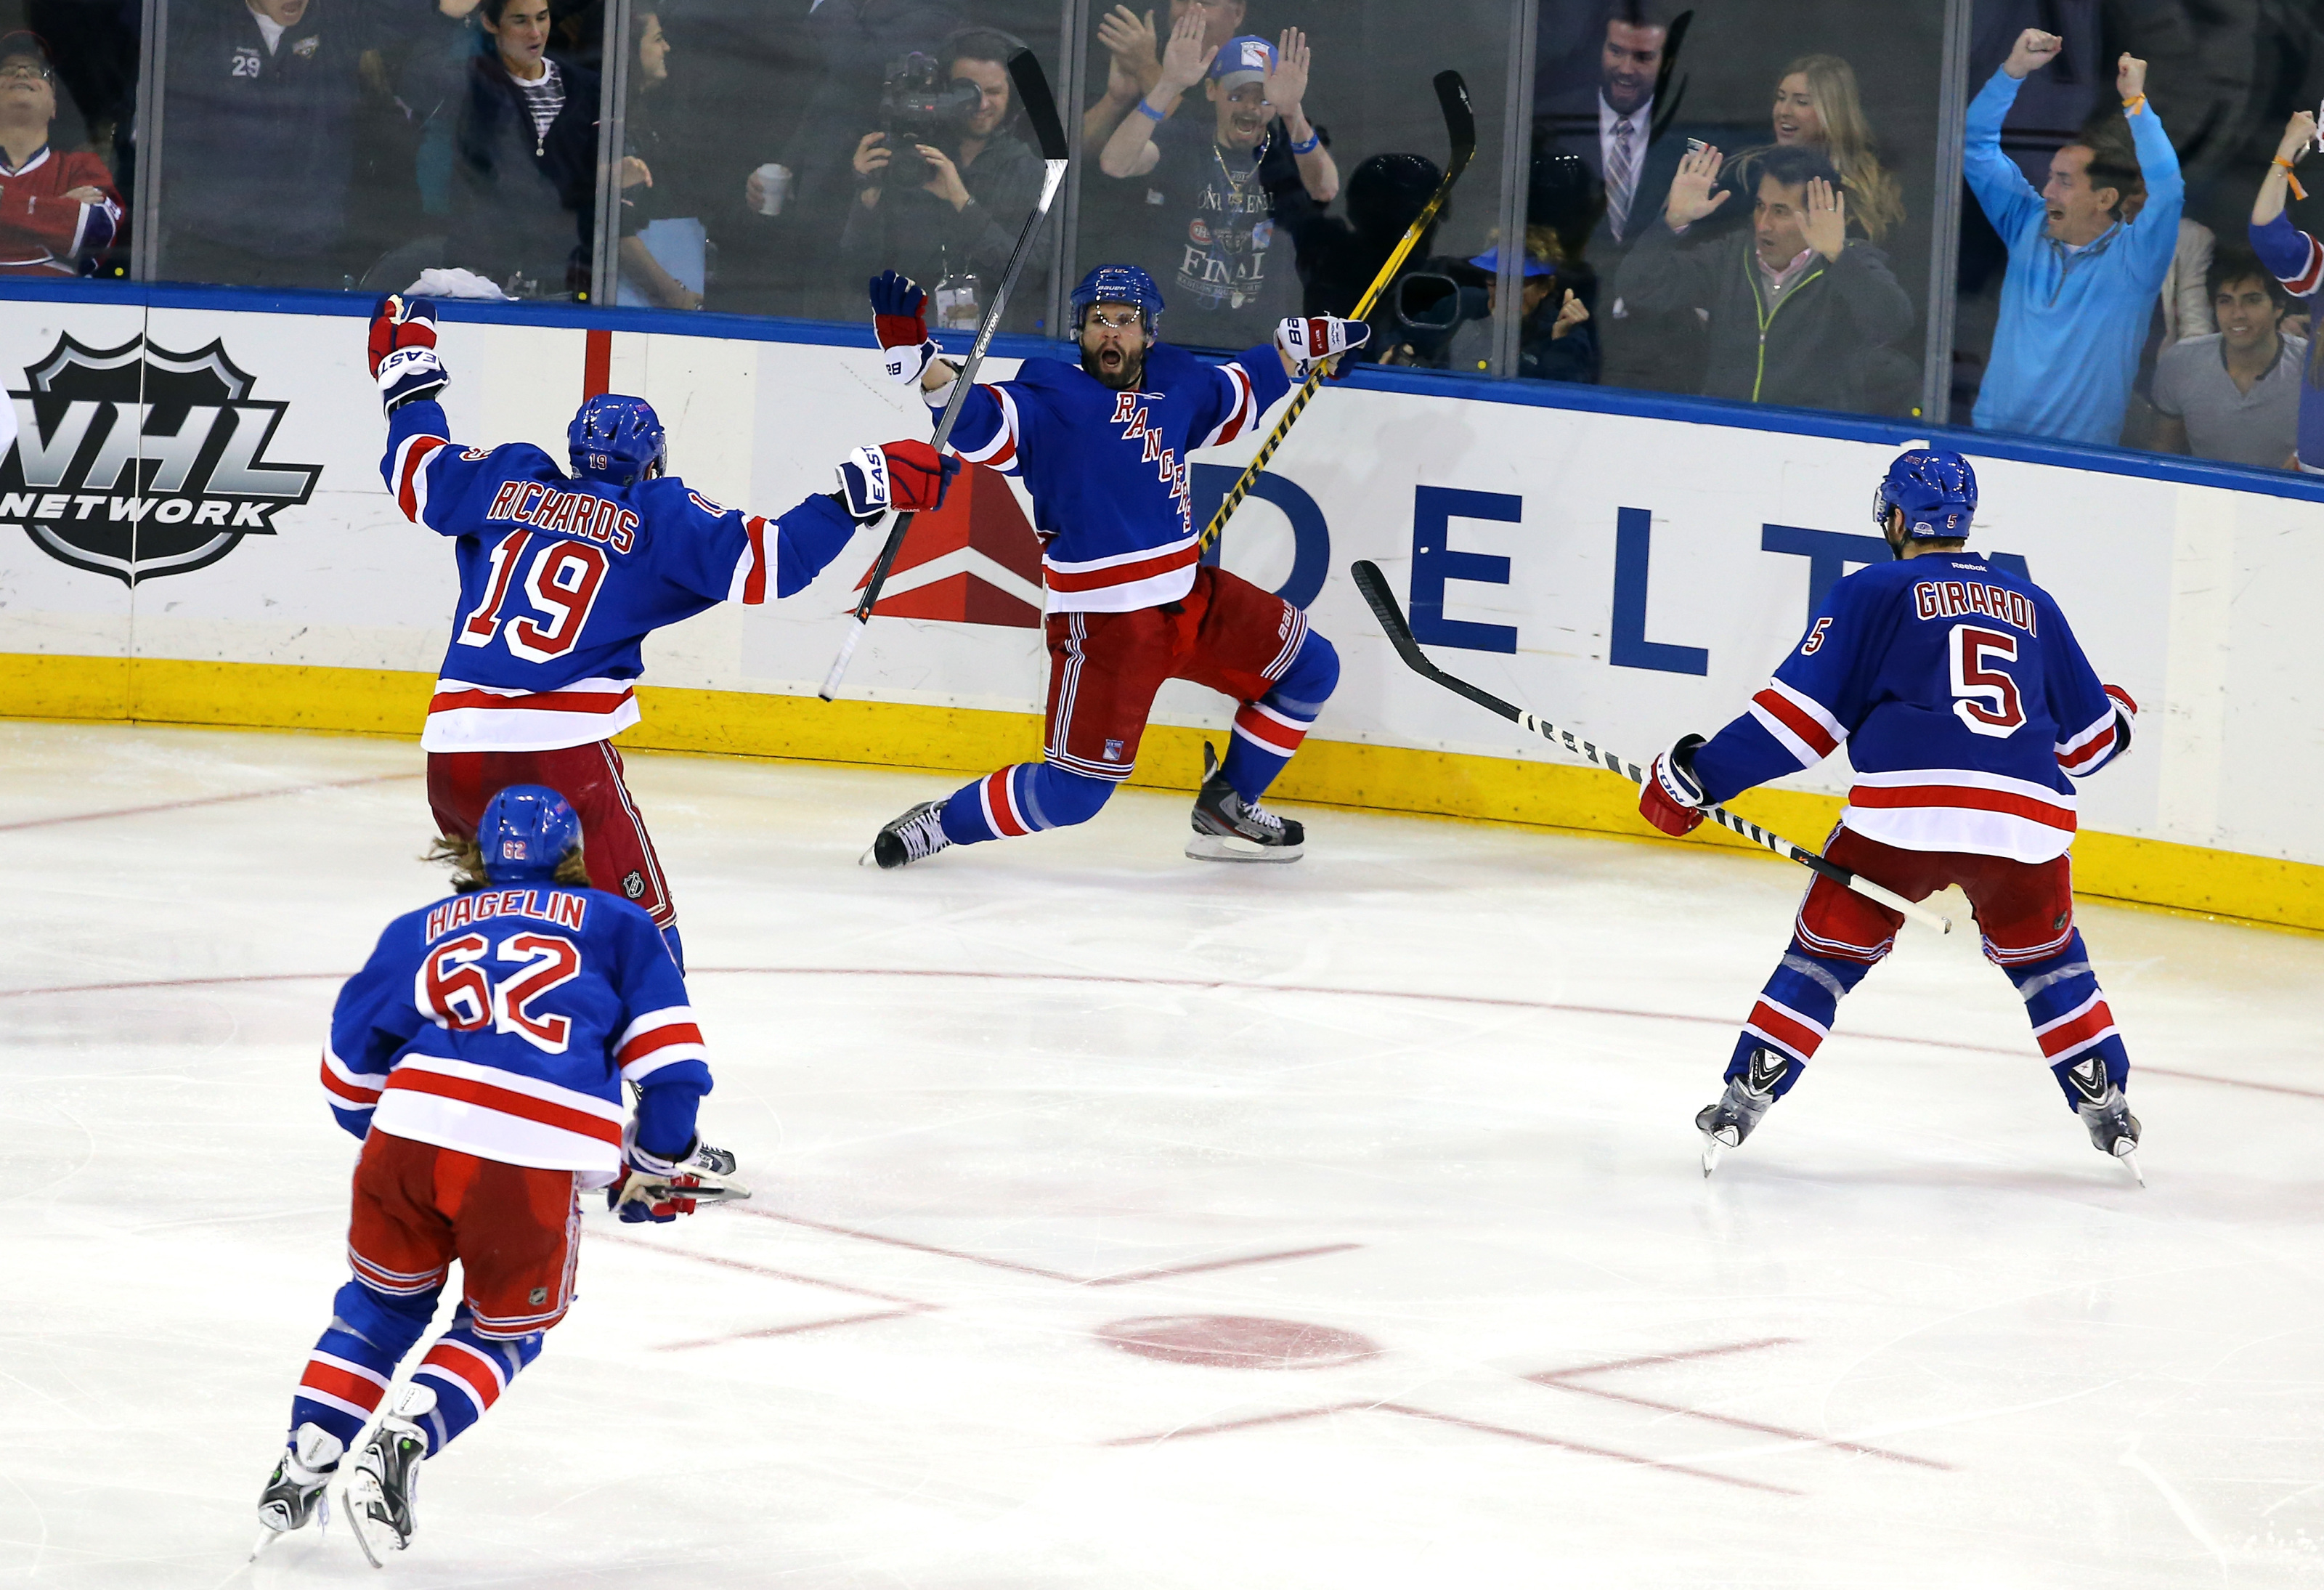 New York Rangers doing their best to take us all back to a happier place